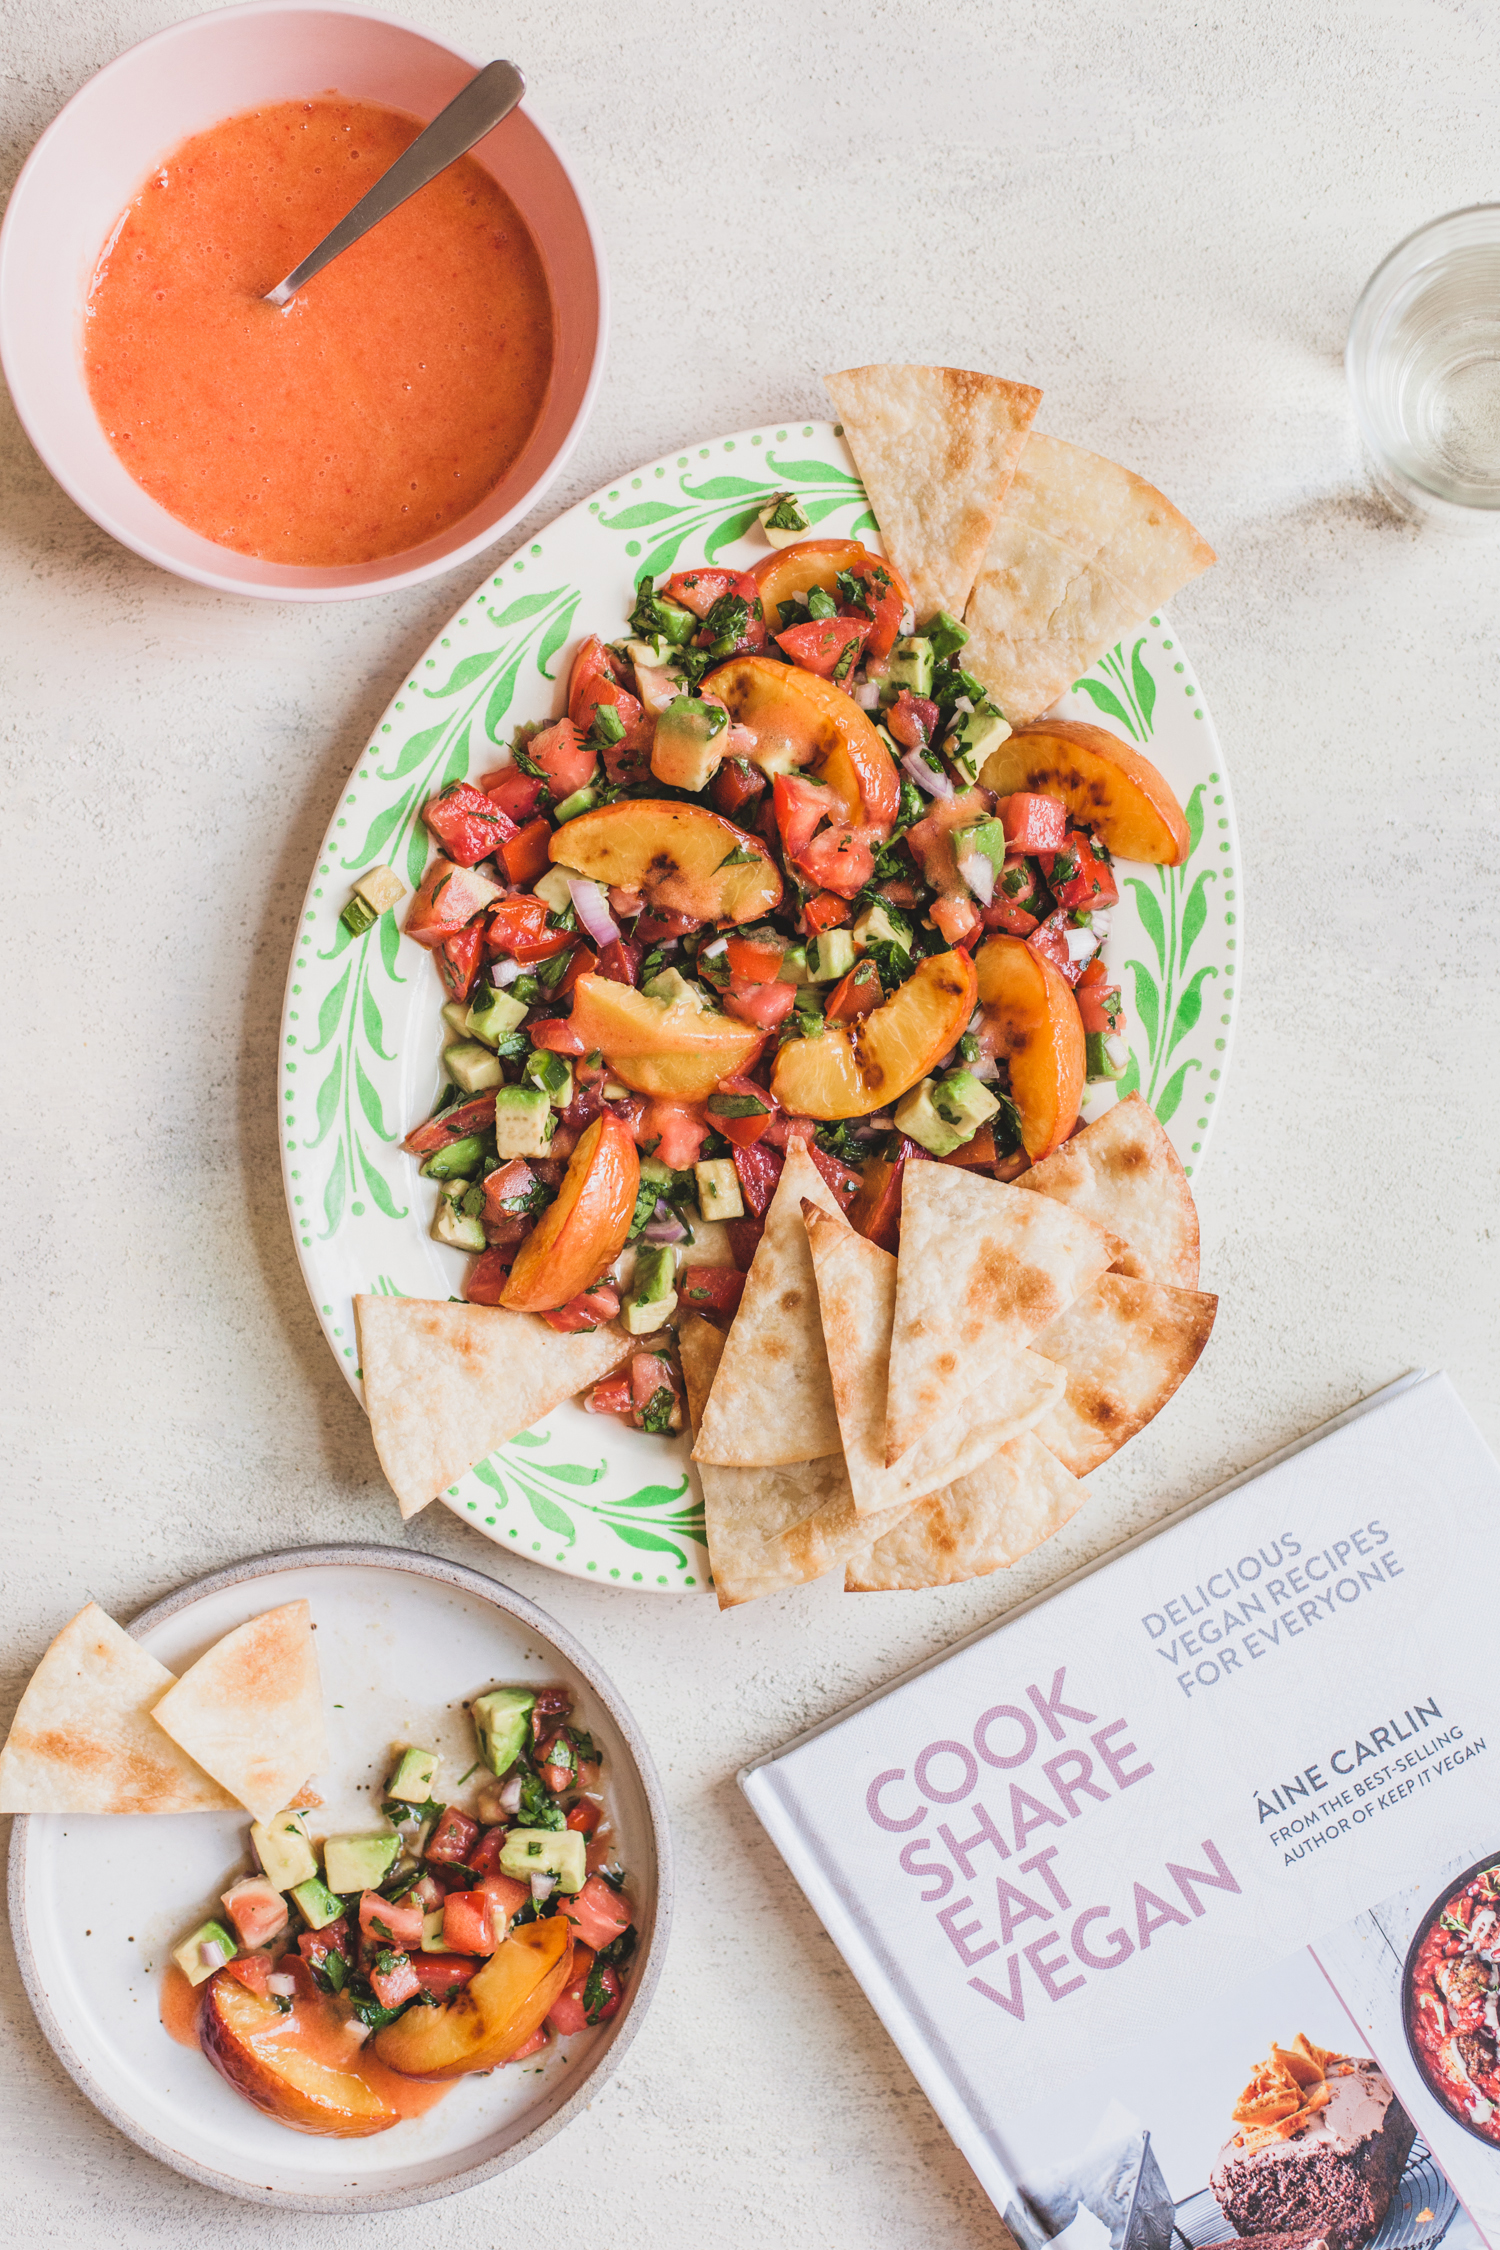 Salsa-Style Peach Panzanella from Cook Share Eat Vegan - Golubka Kitchen